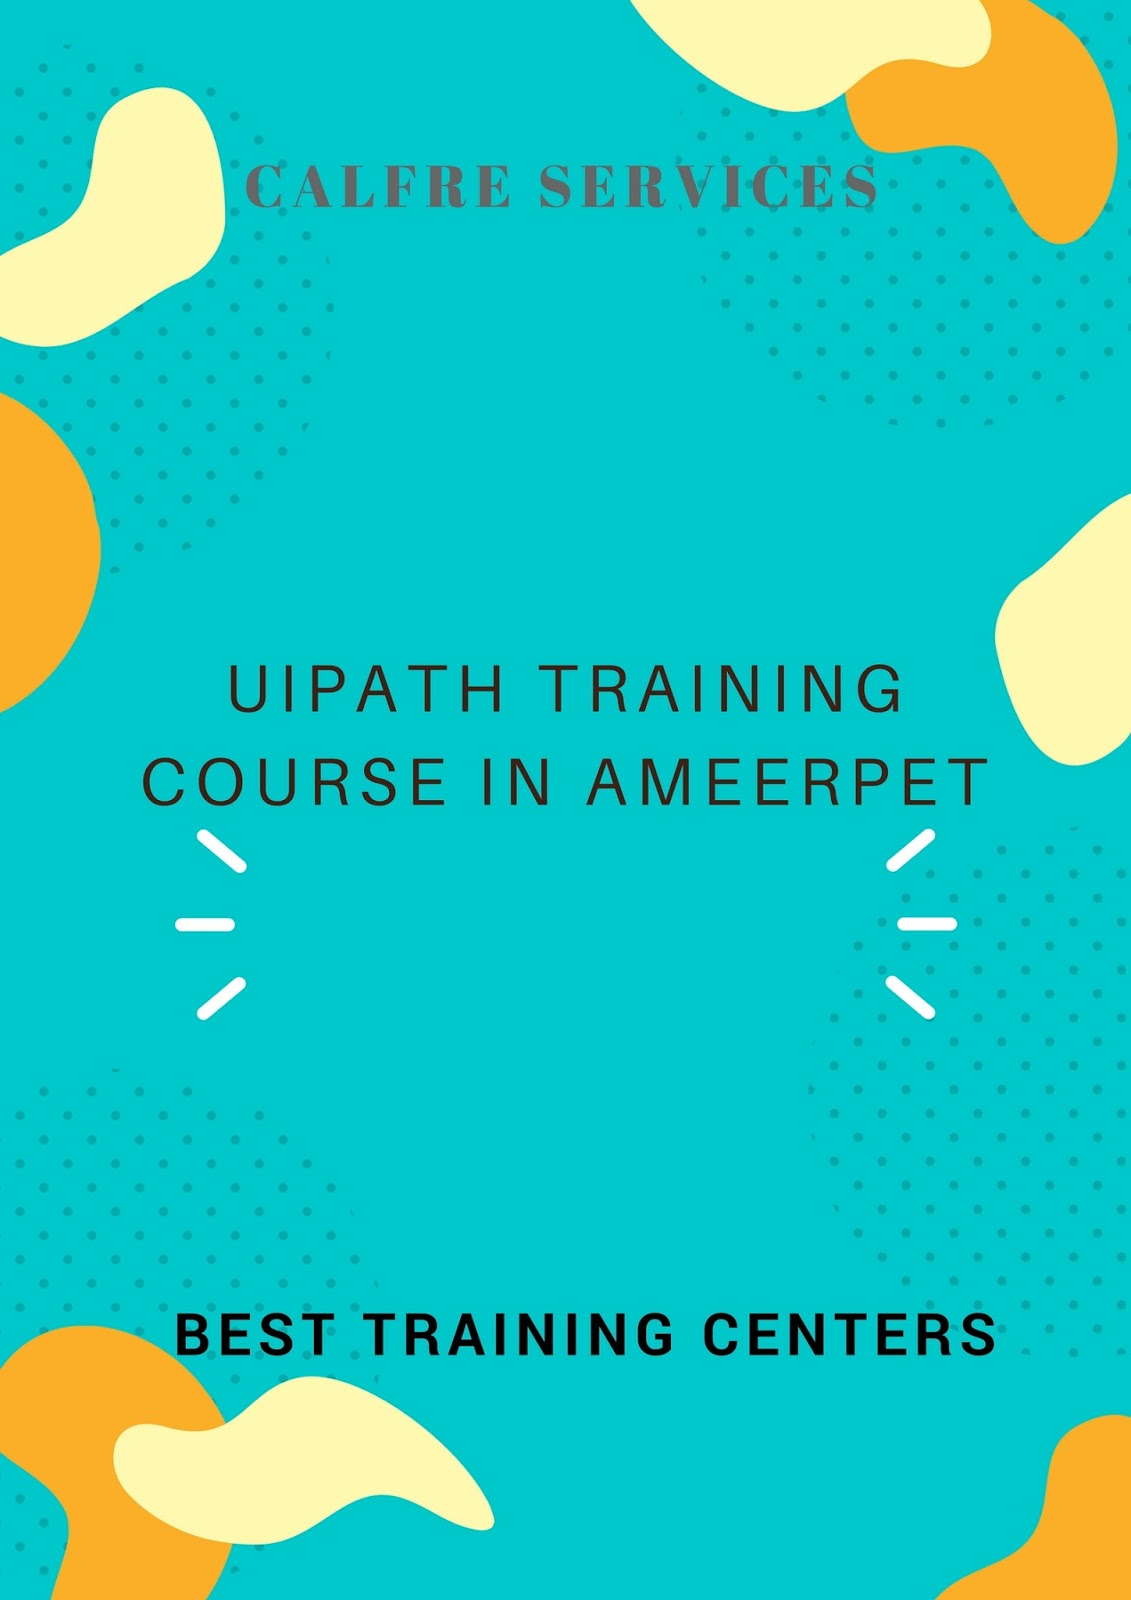 BEST TRAINING INSTITUTES FOR UI-PATH TRAINING COURSE IN AMEERPET